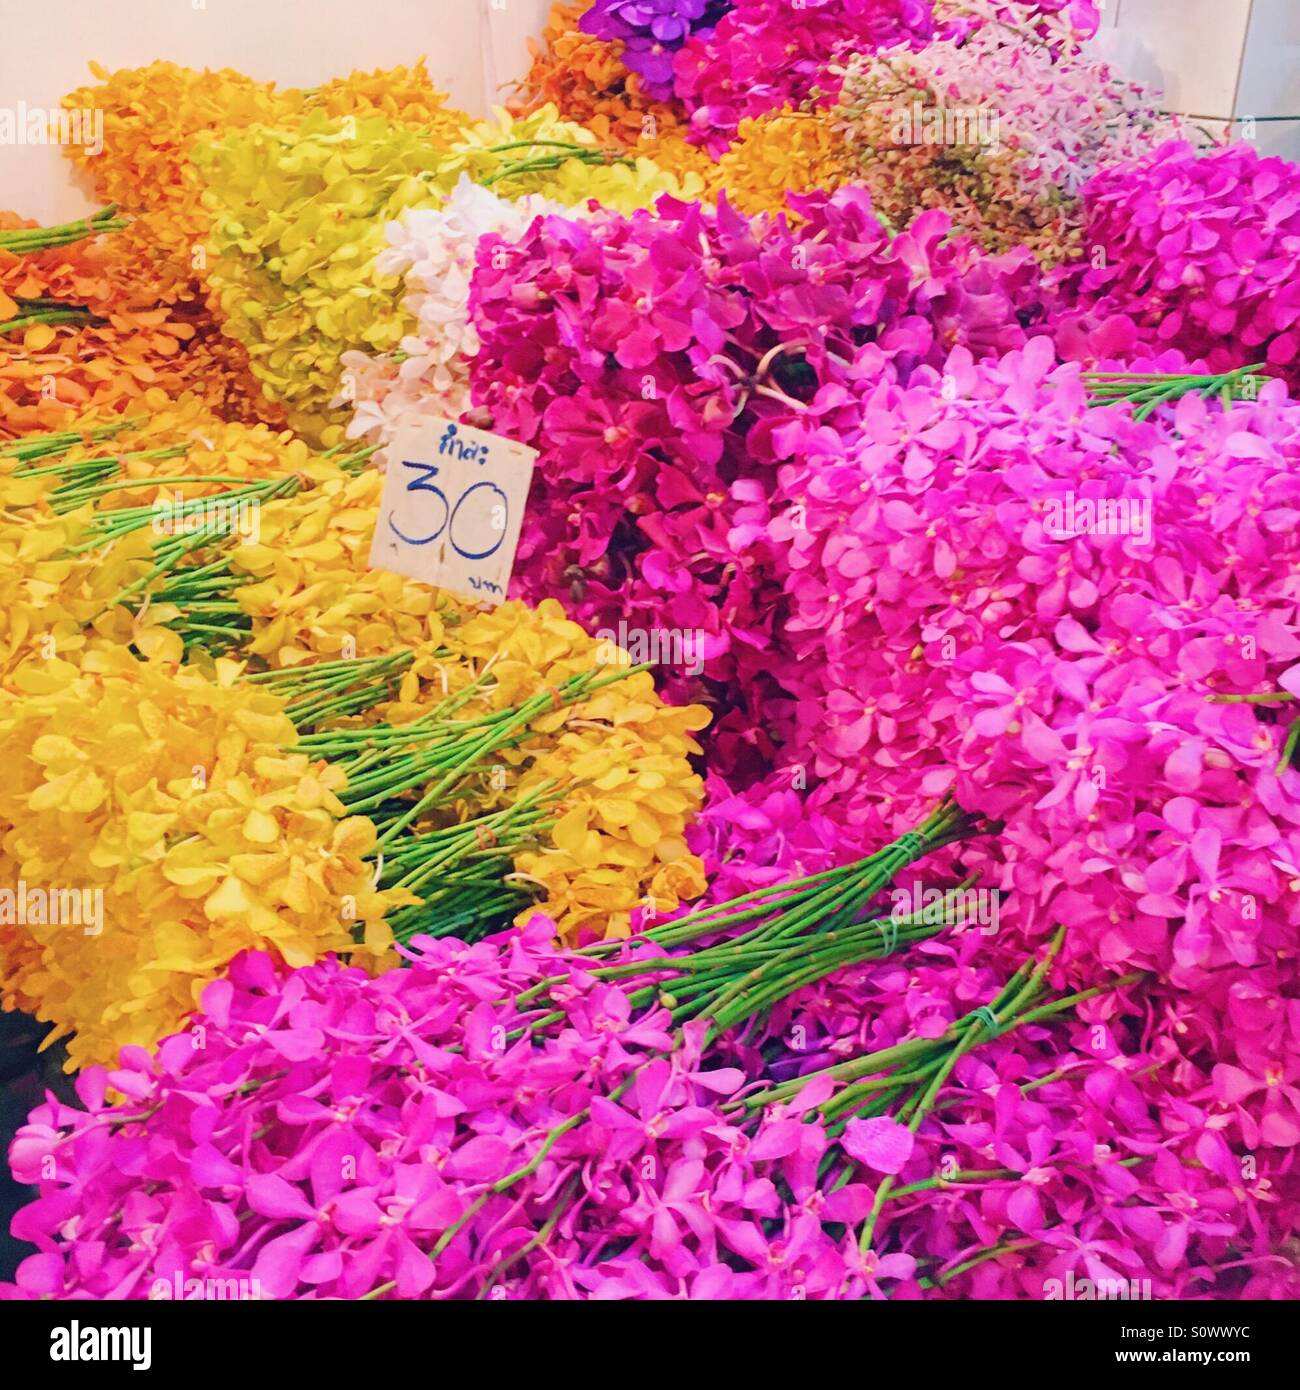 Flower market in Bangkok at night - Pak Khlong Talad - Stock Image